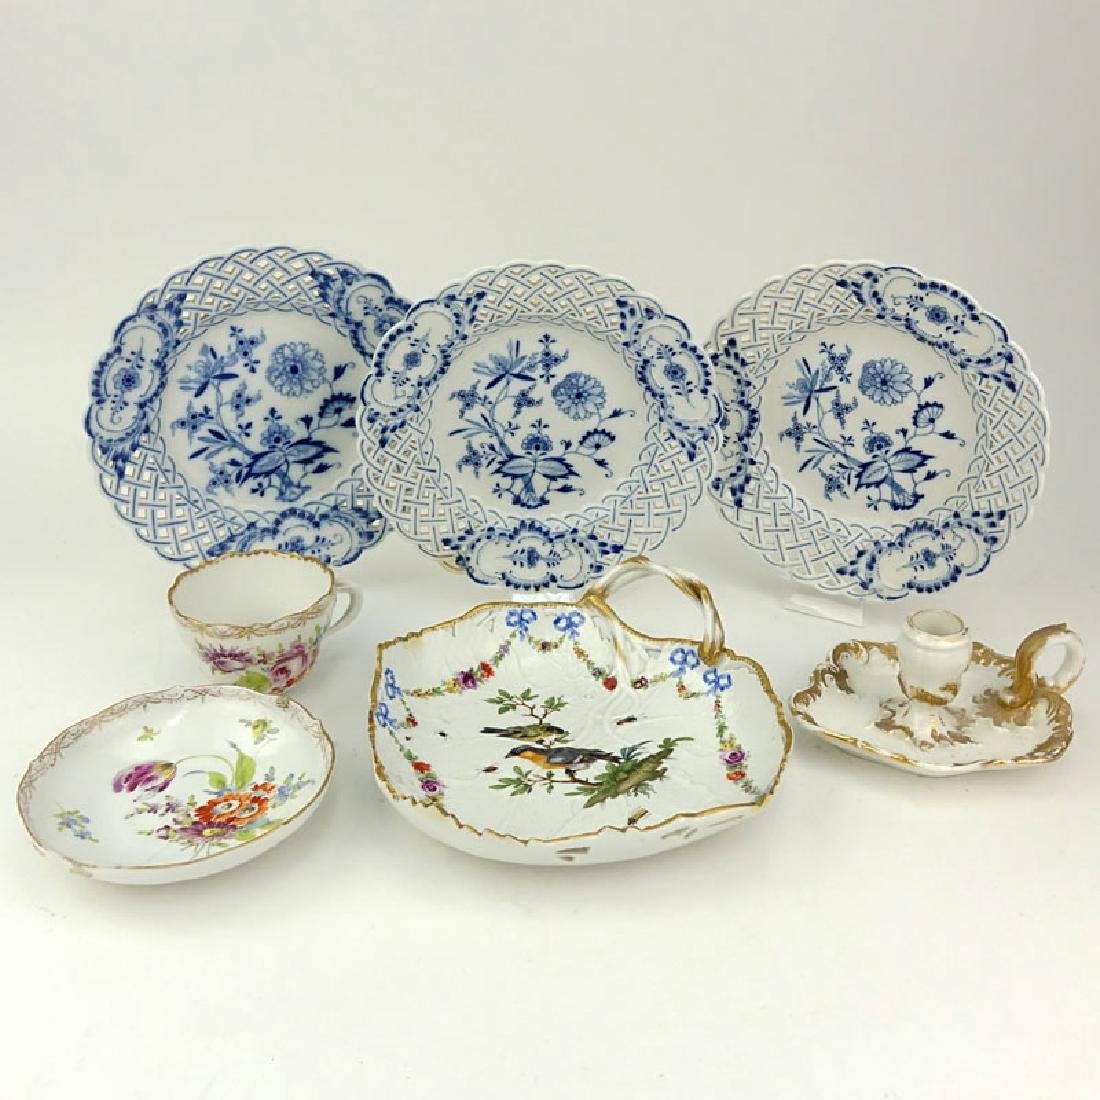 Grouping of Seven (7) Antique Meissen Porcelain